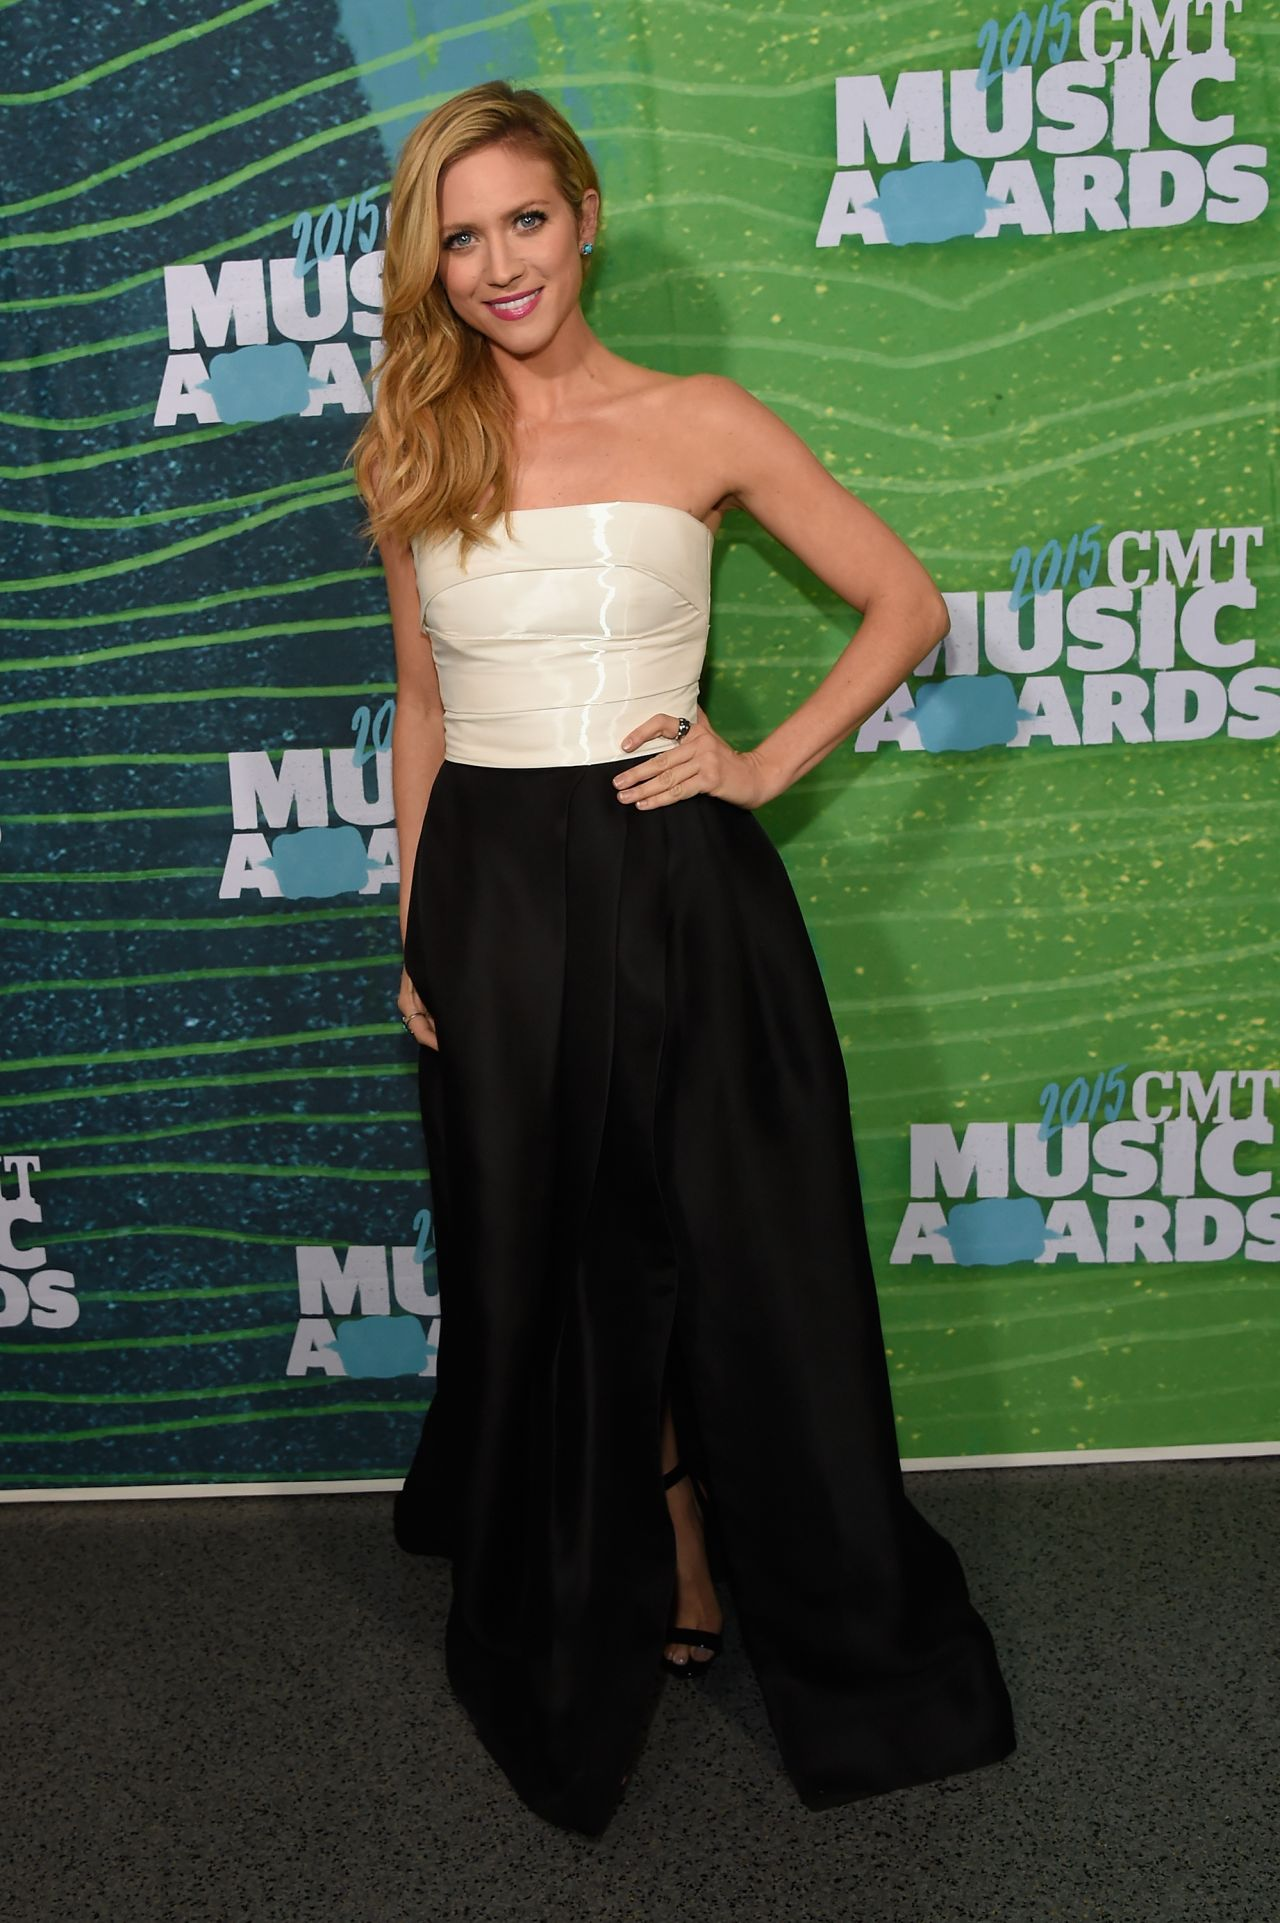 brittany-snow-2015-cmt-music-awards-in-nashville_